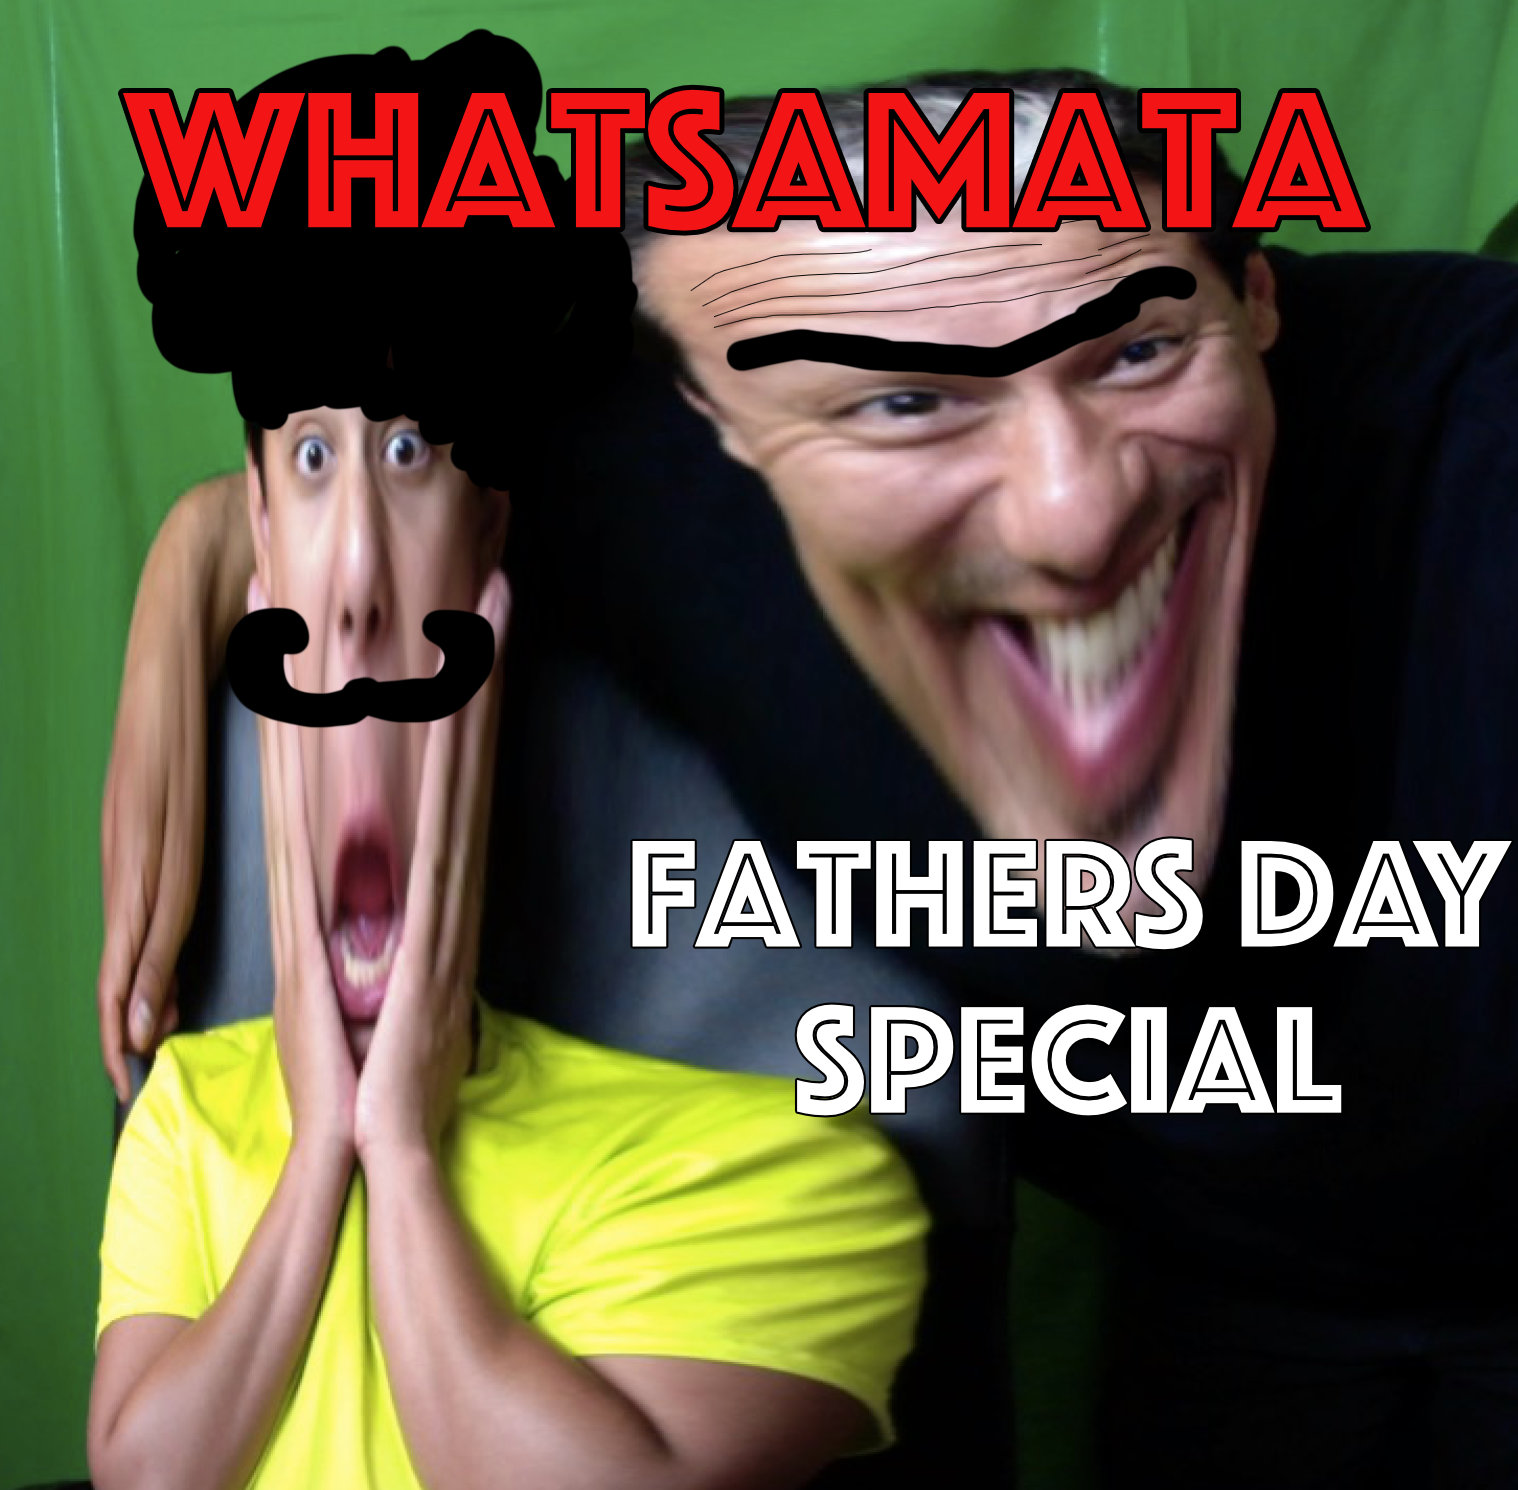 Father's Day episode